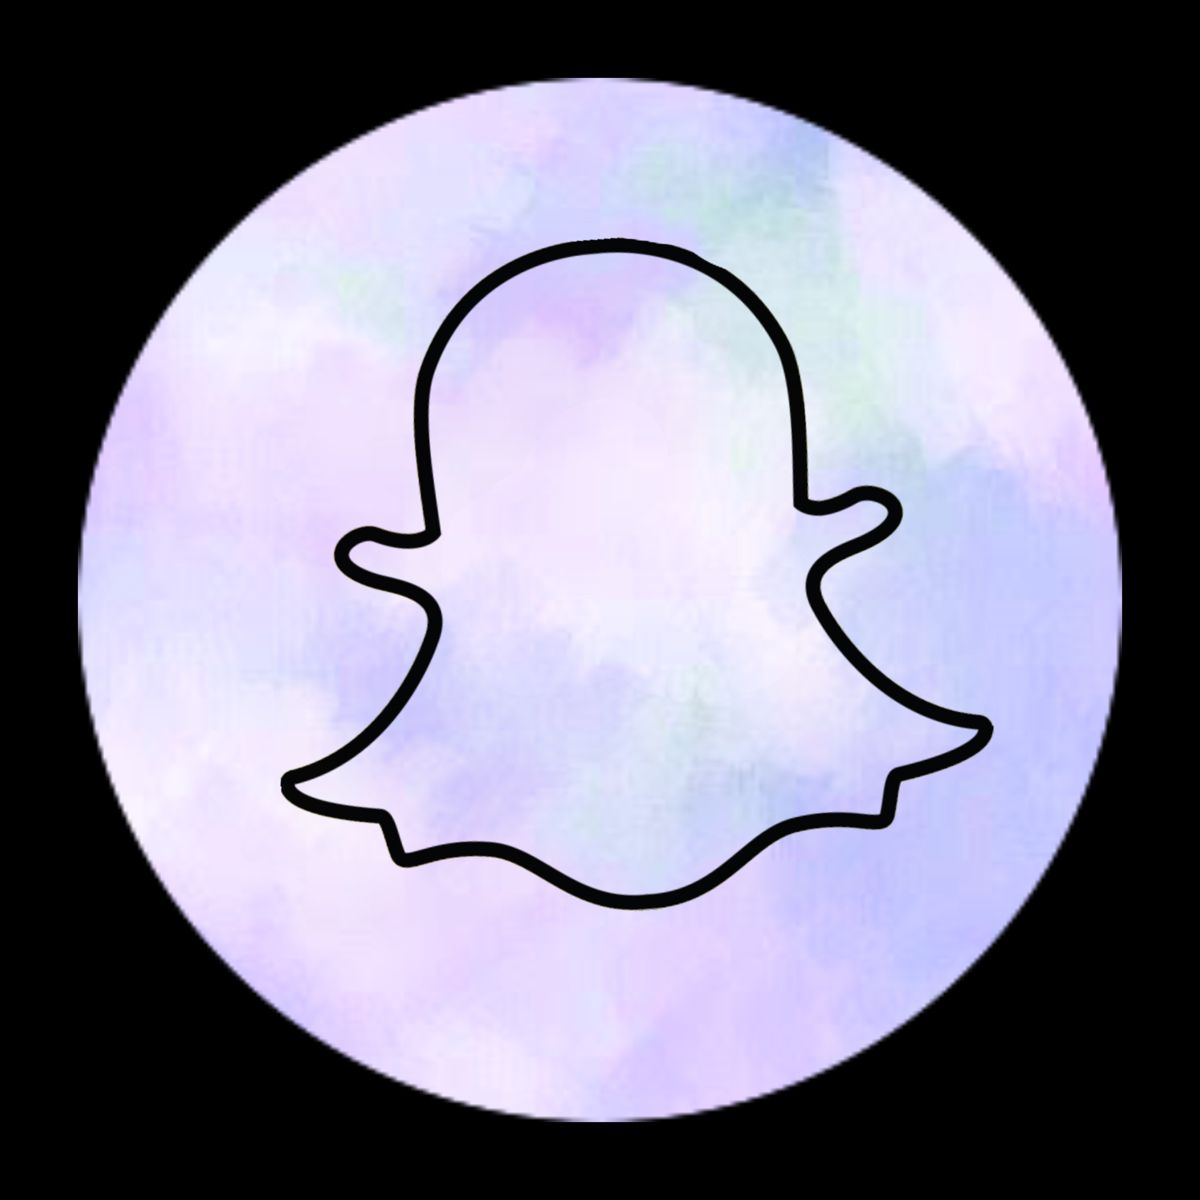 Snapchat Icon In 2020 Snapchat Icon Iphone Wallpaper Tumblr Aesthetic Iphone Icon